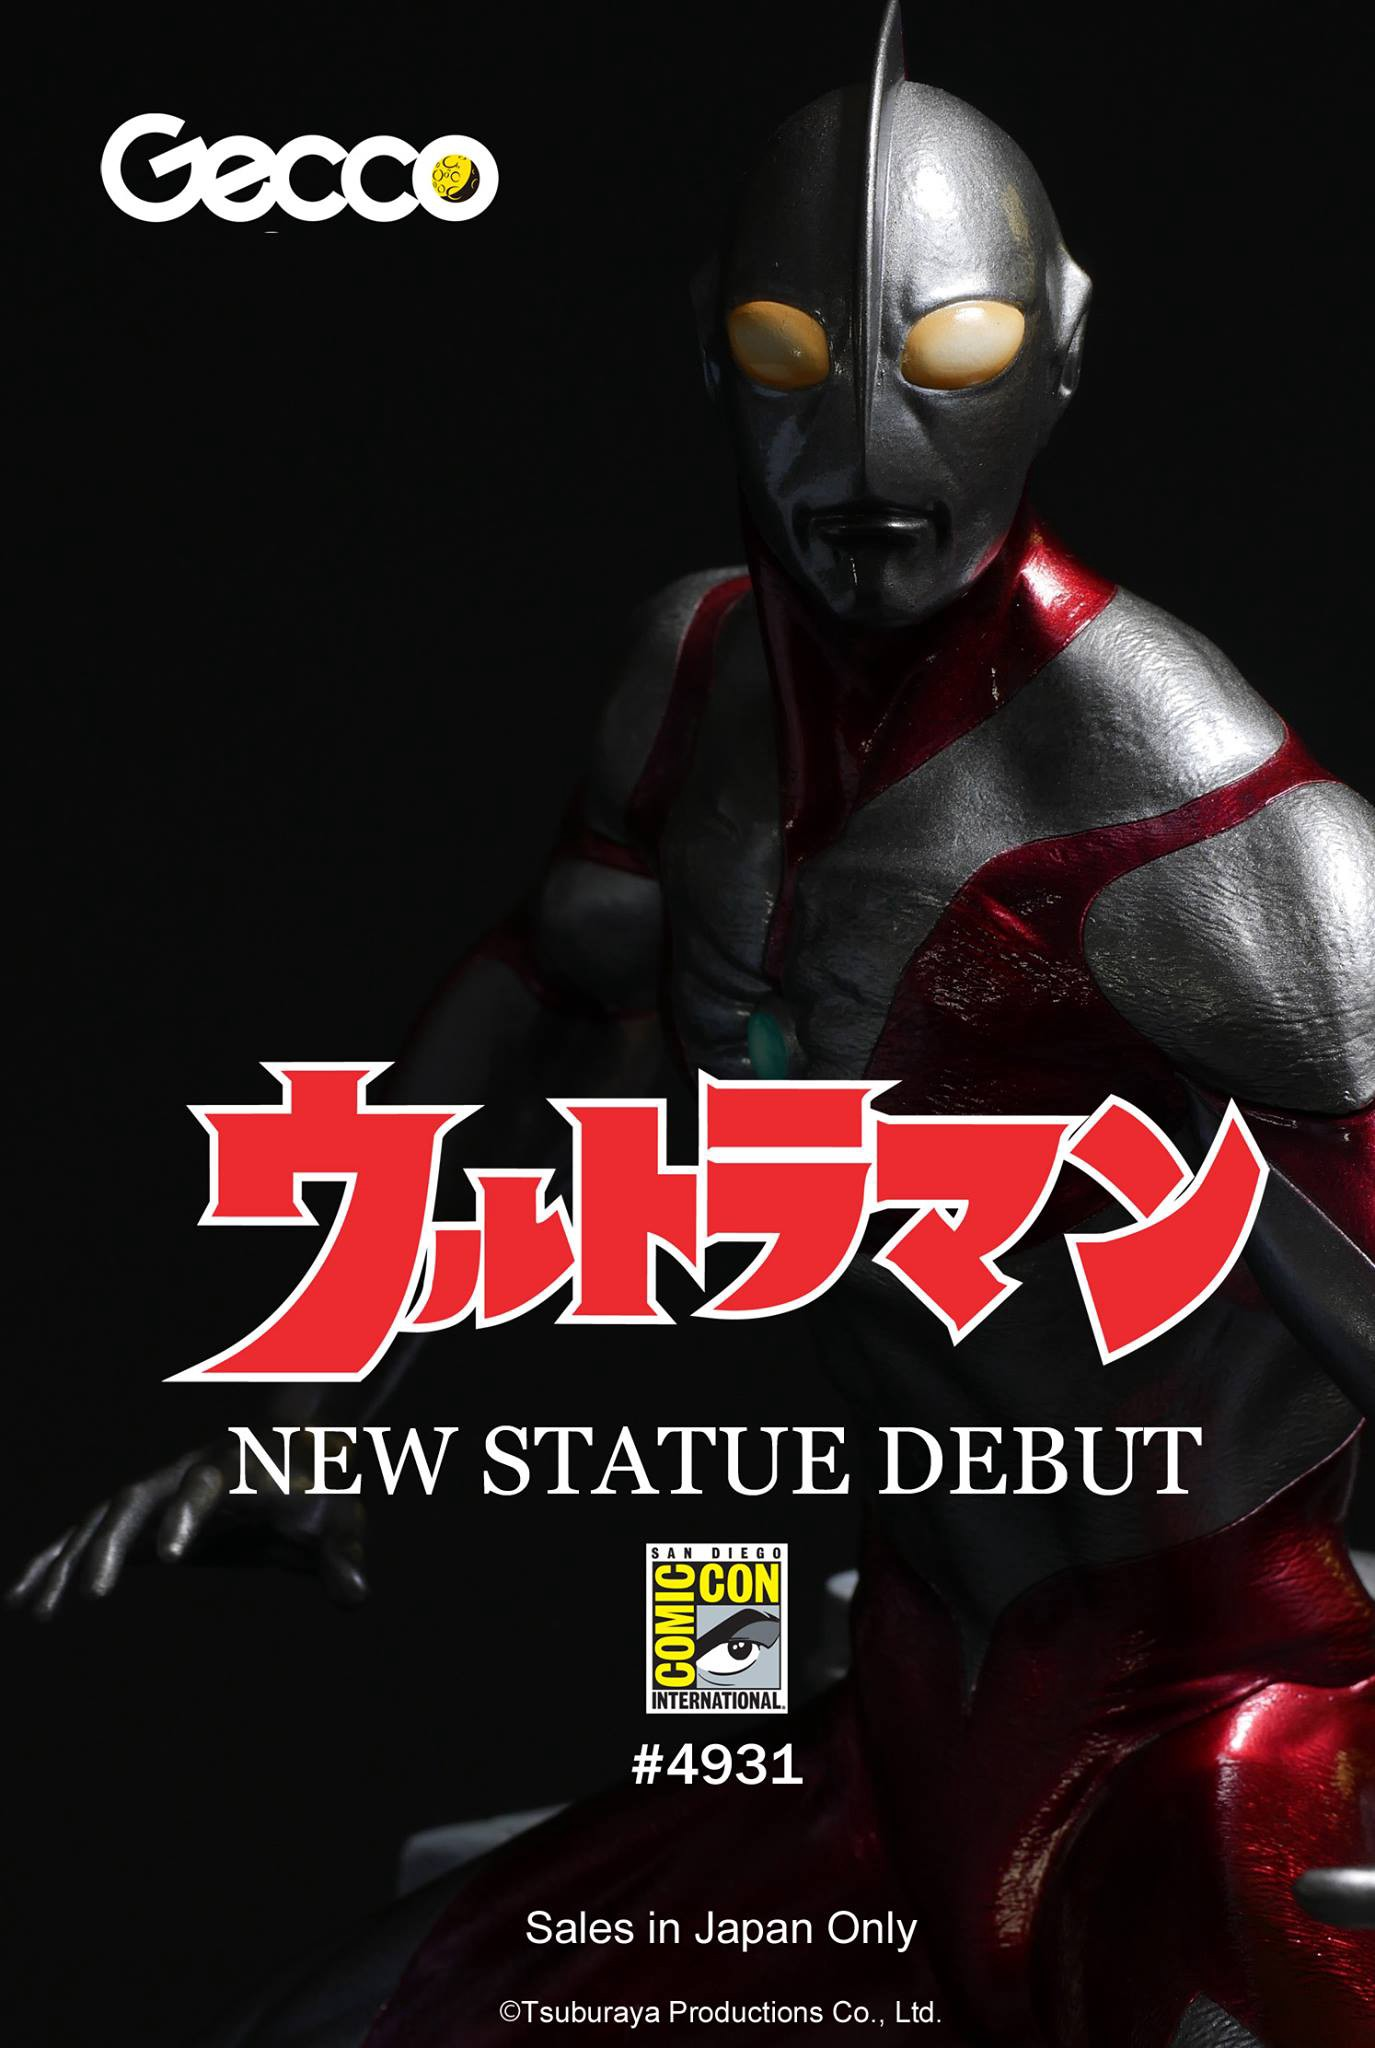 Ultraman Statue by Gecco Corp